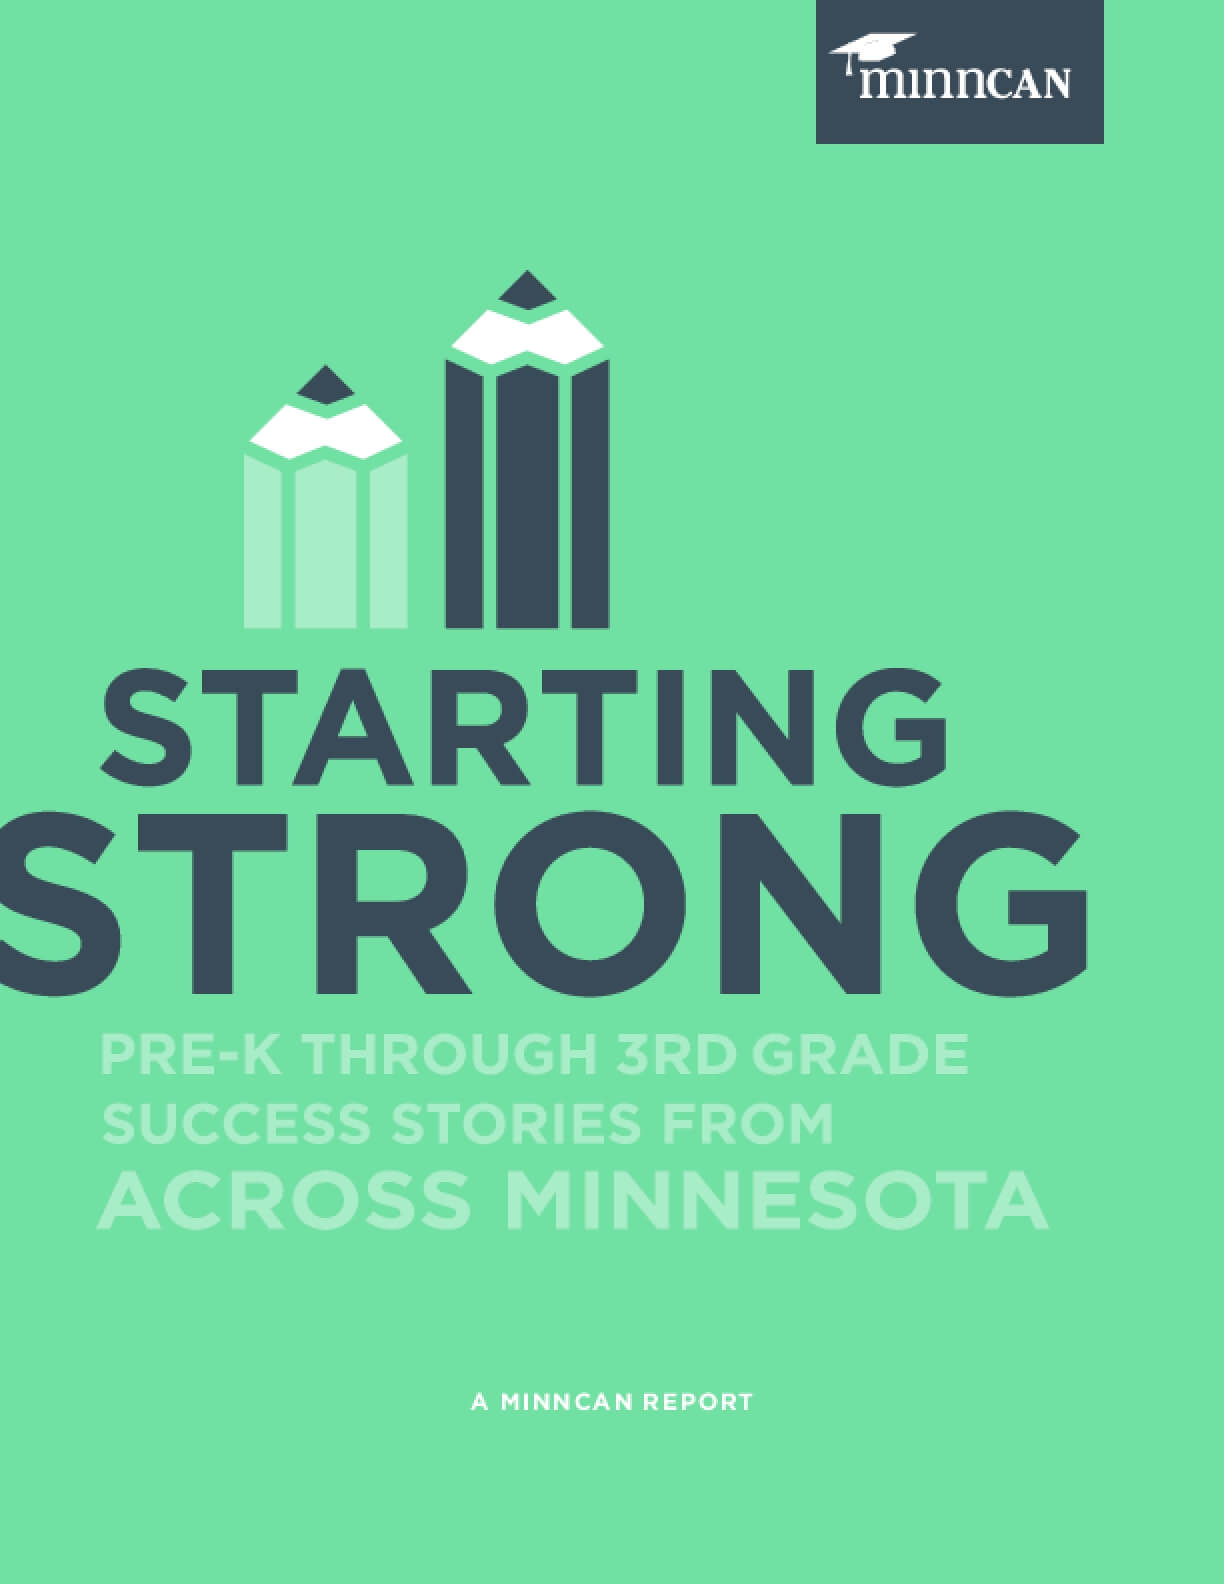 Starting Strong: Pre-K through 3rd Grade Success Stories from Across Minnesota